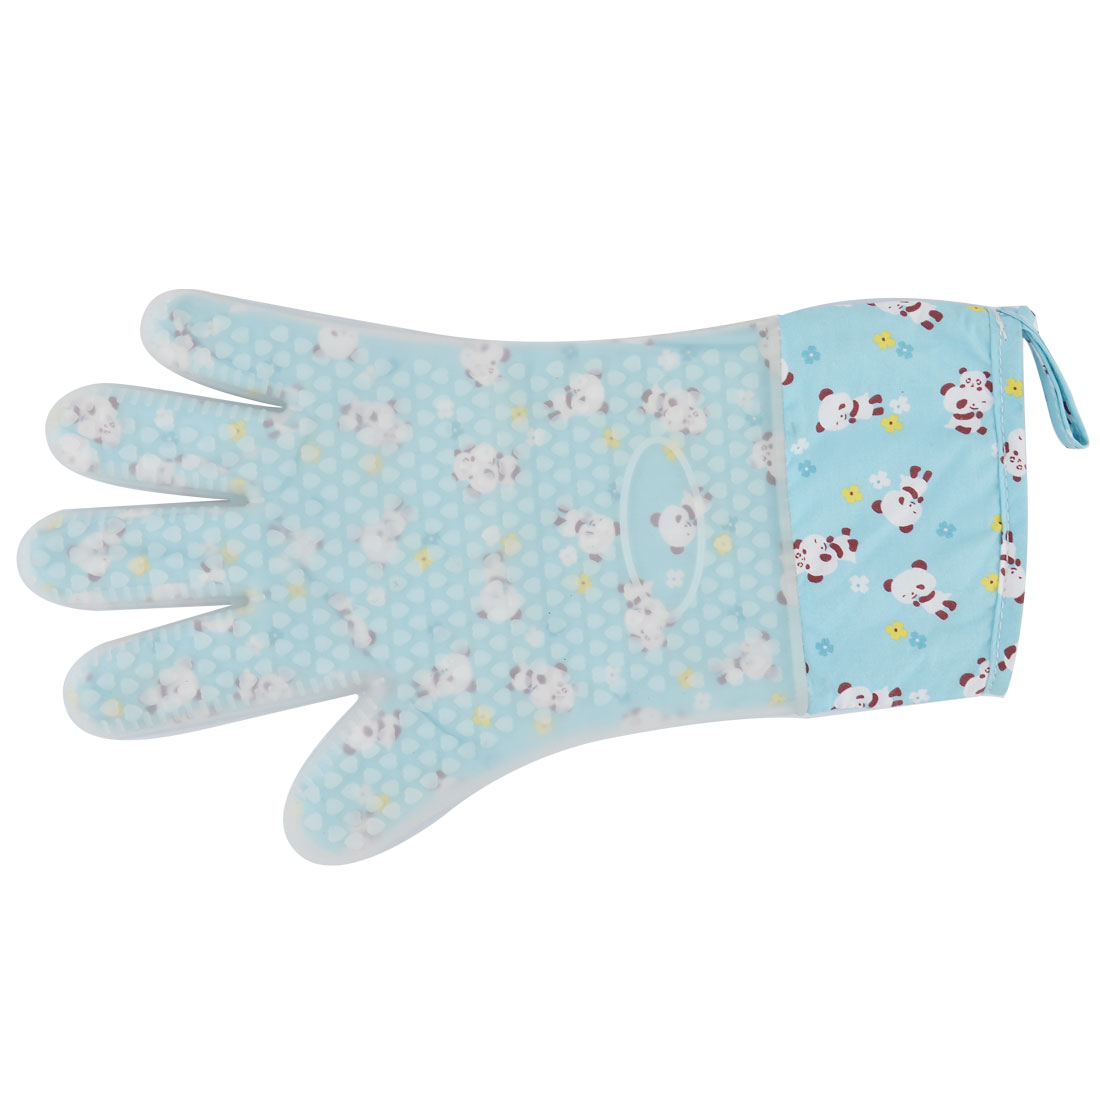 Silicone Panda Flower Pattern Kitchen Baking Heat Resistant Oven Mitt Glove Blue